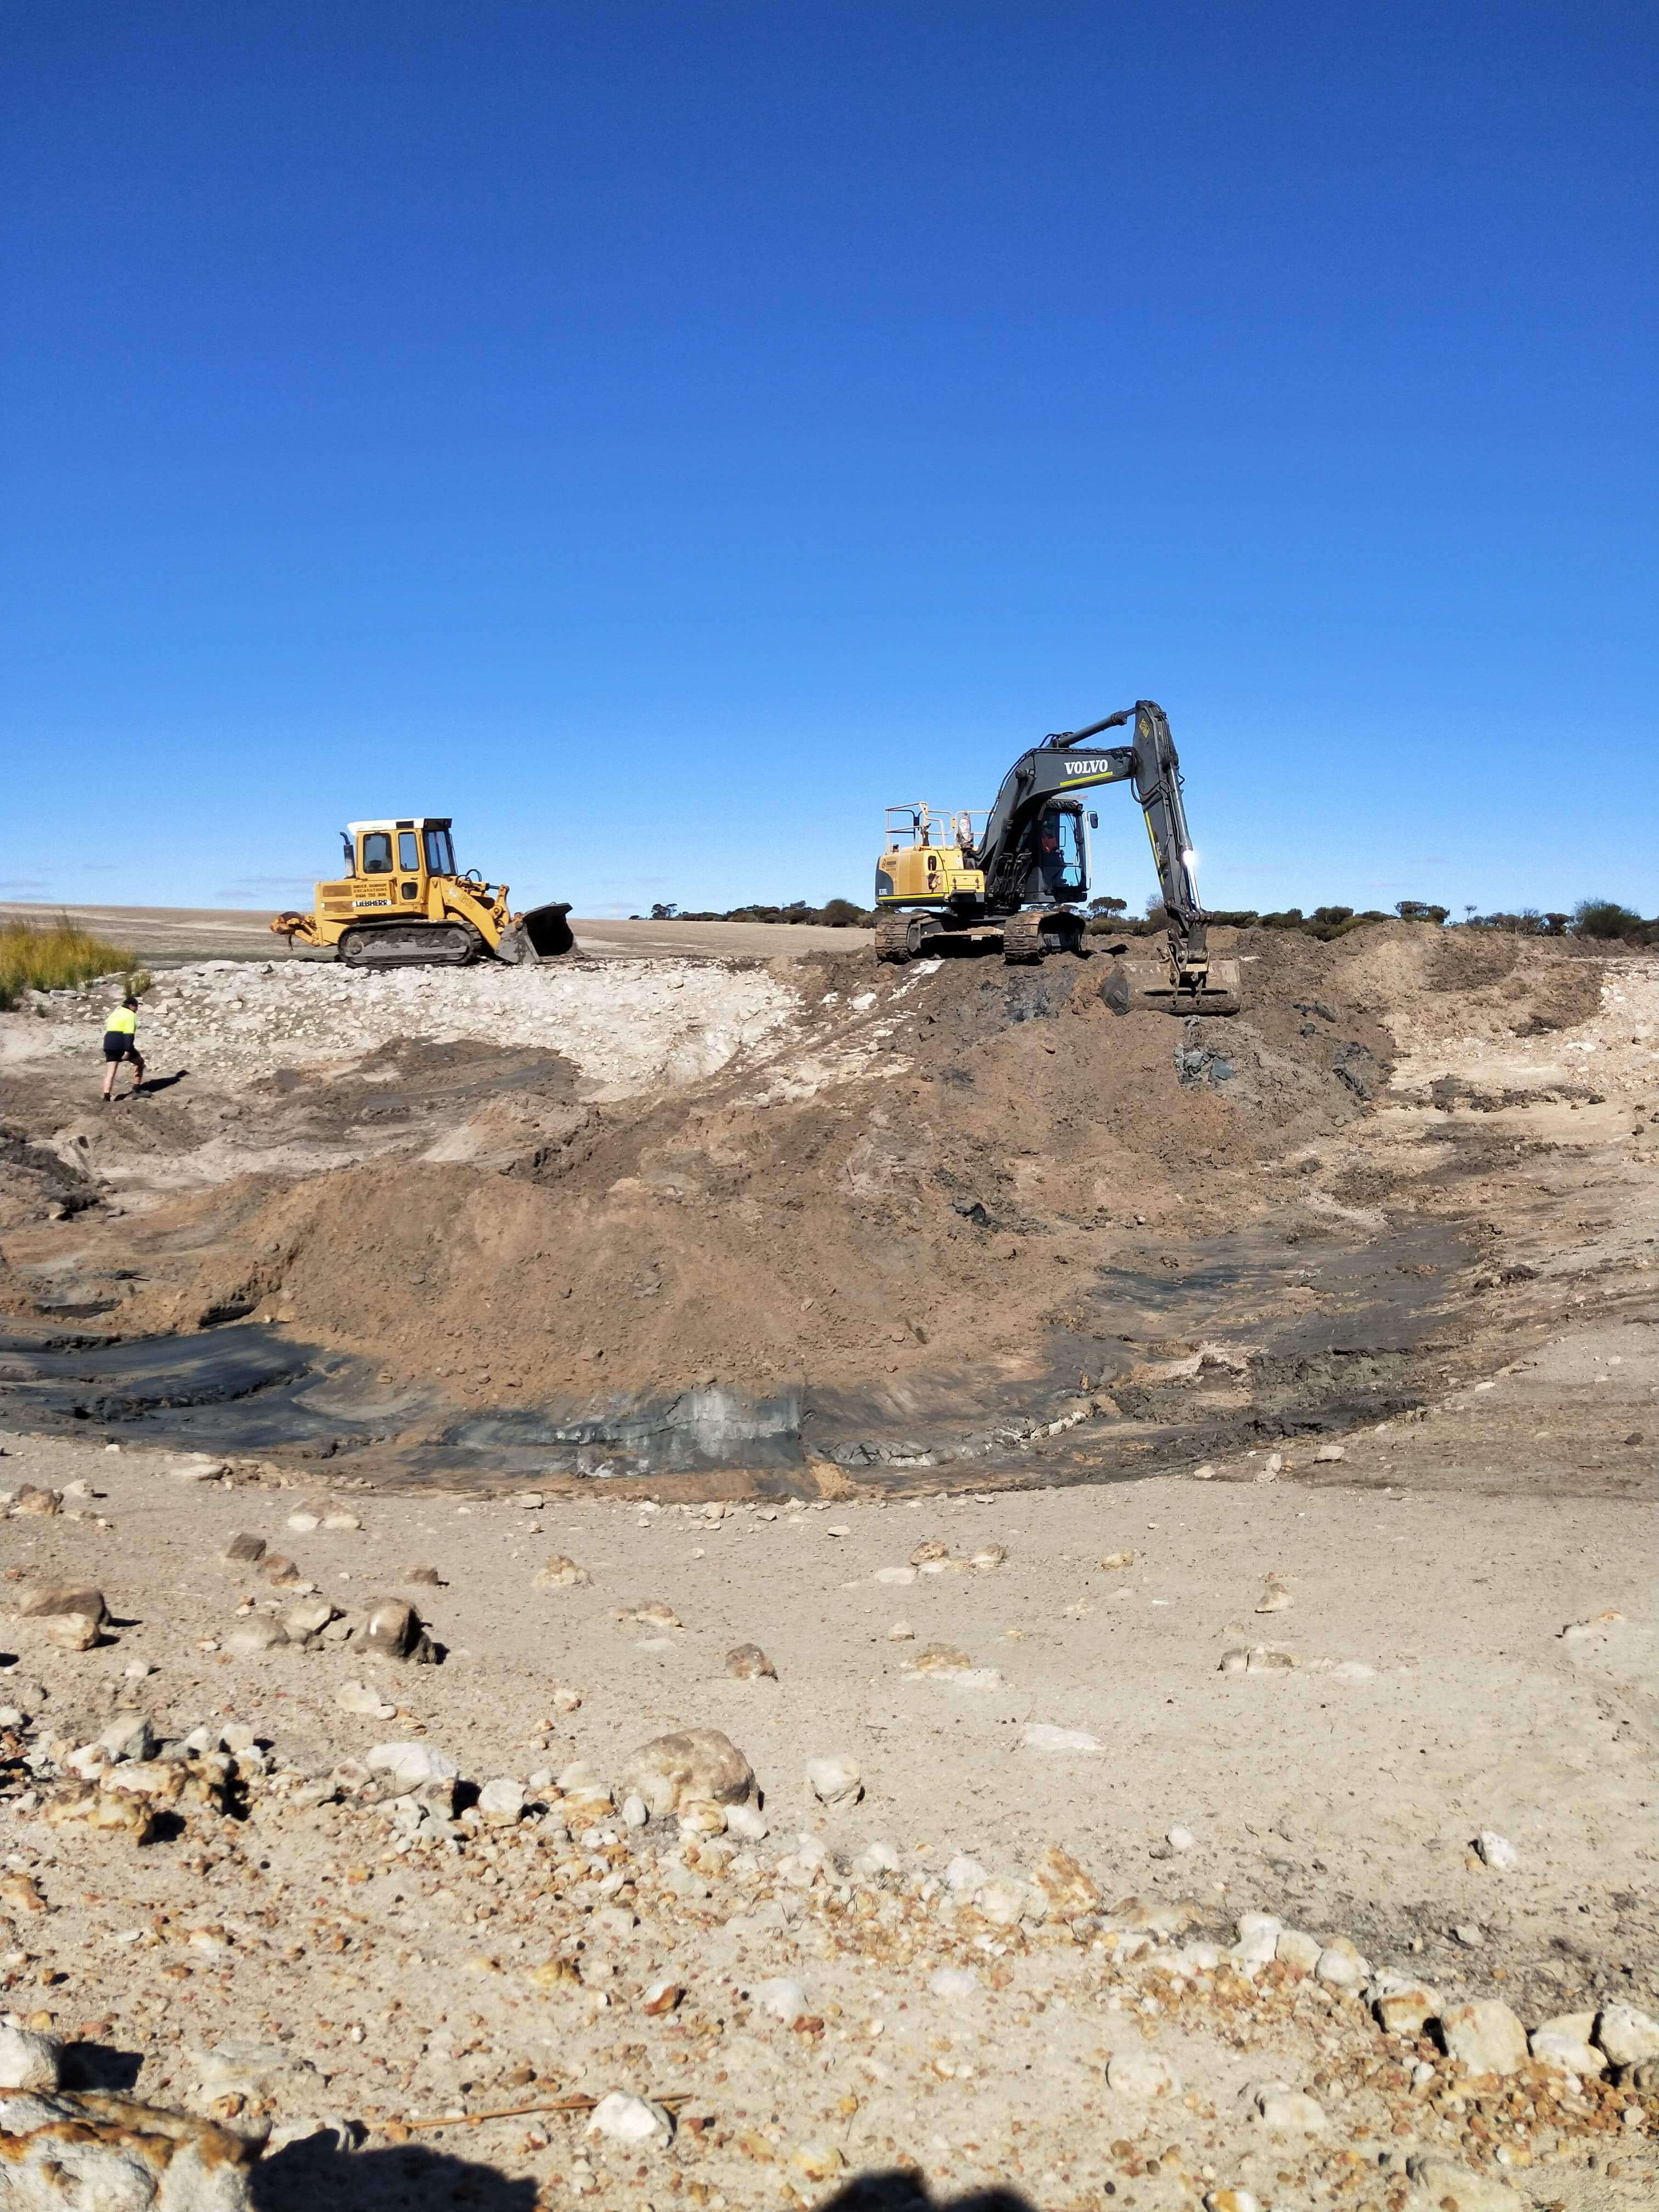 Dobson Excavations Dam Cleaning, Extending and Construction Dam Expanding Using Excavator